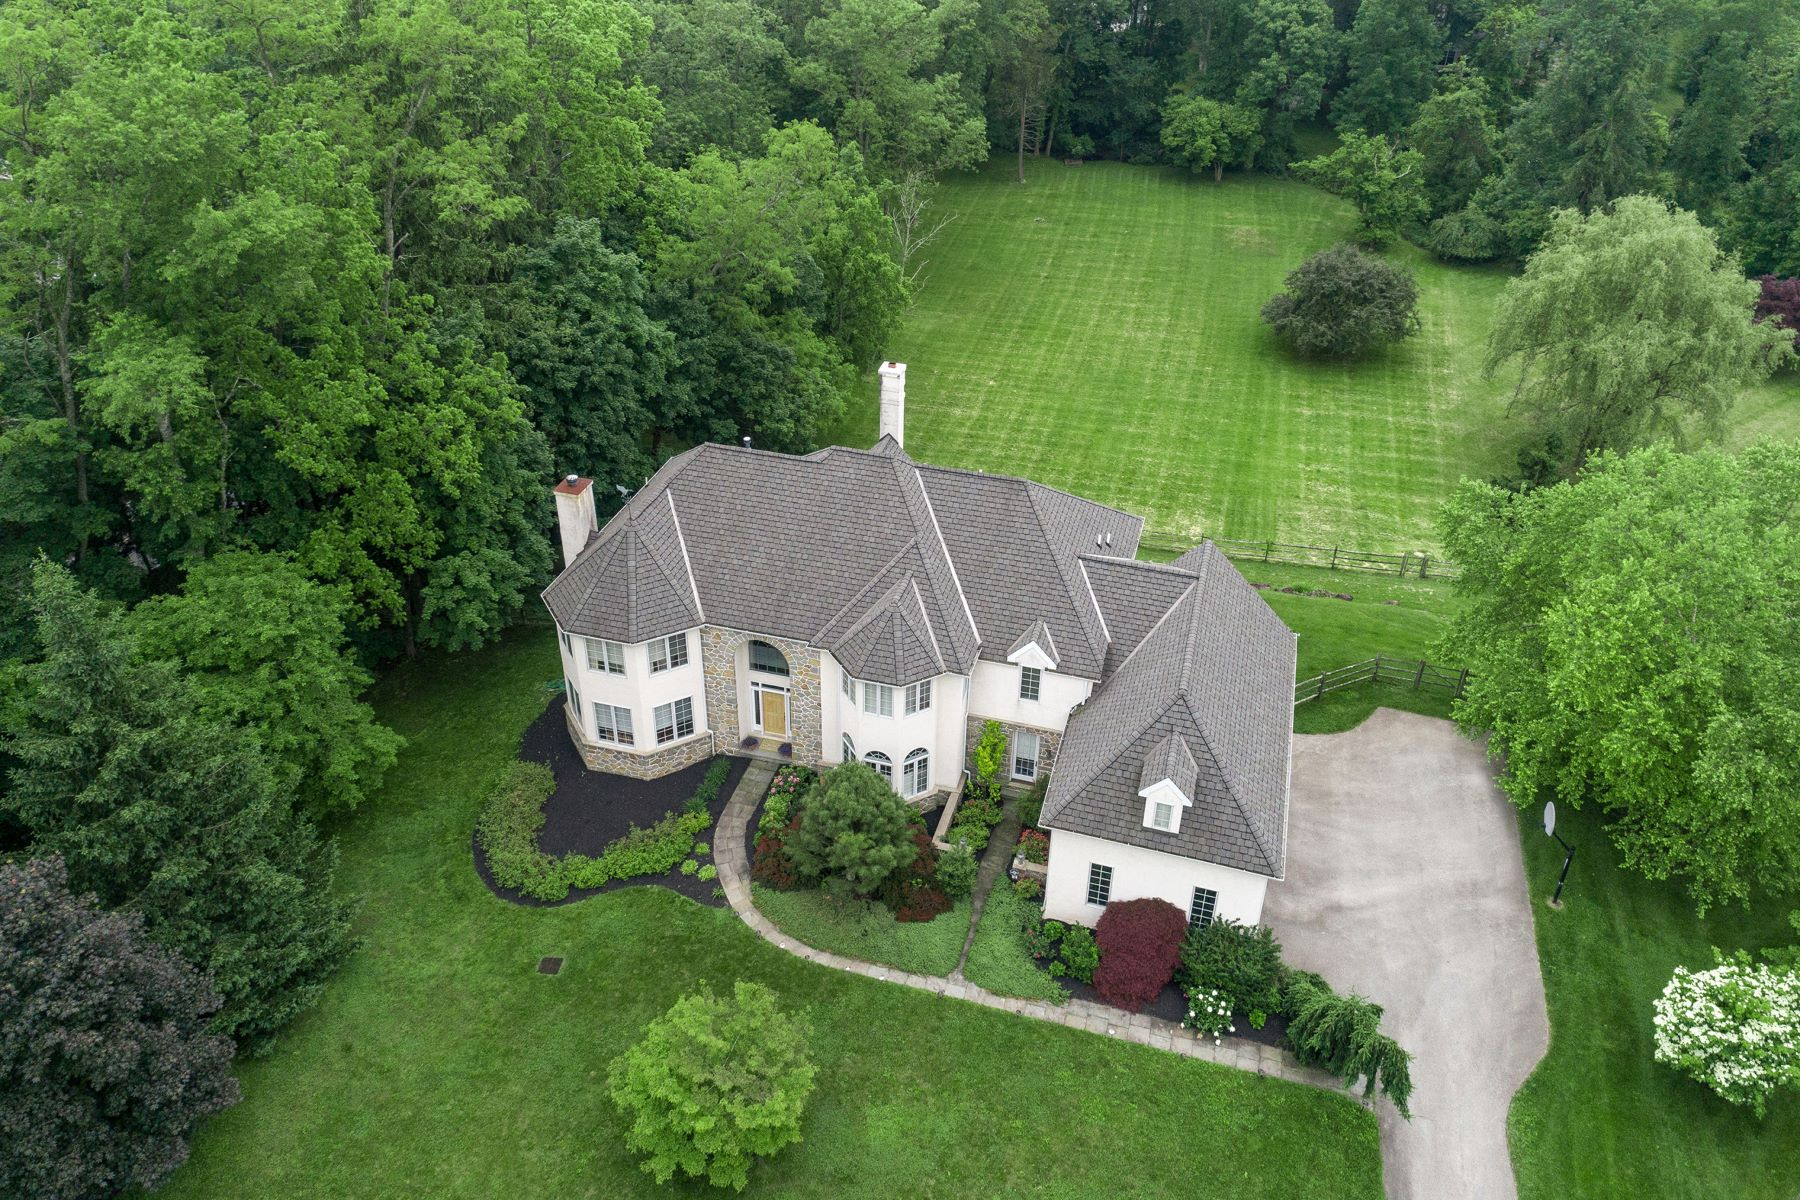 Single Family Homes for Sale at 542 NEWTOWN RD Berwyn, Pennsylvania 19312 United States